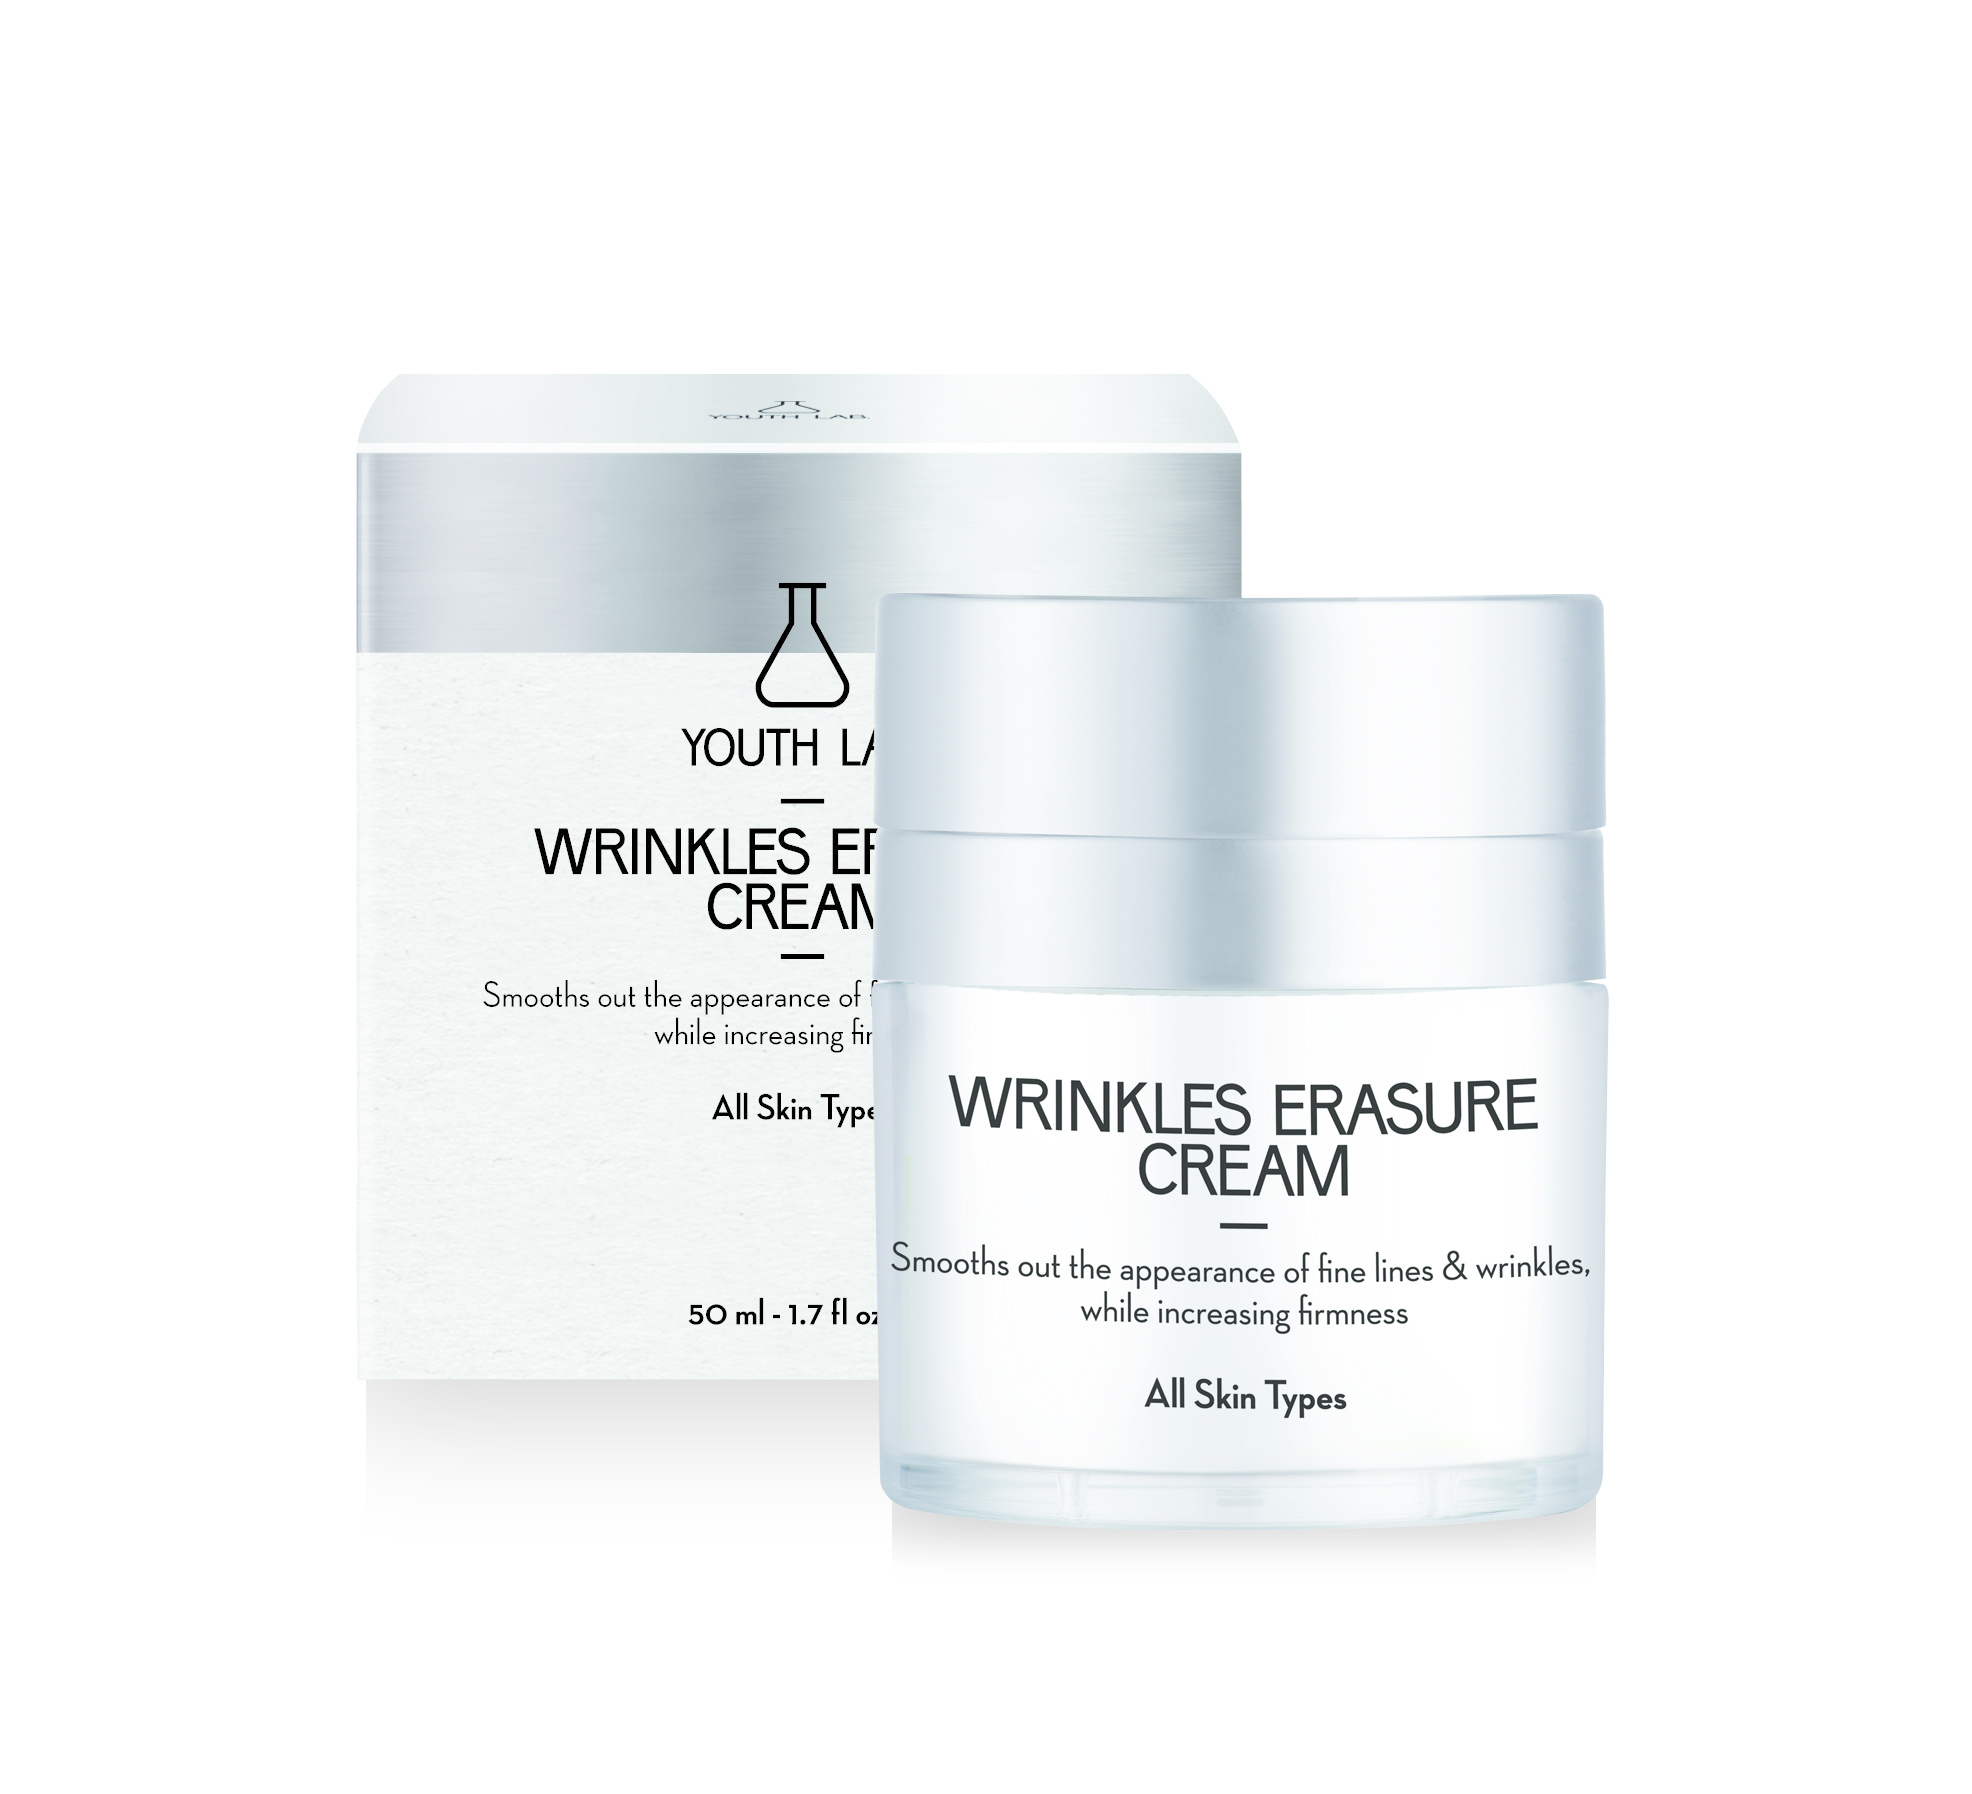 Youth Lab Youth lab Wrinkles erasure cream All skin types 50ml